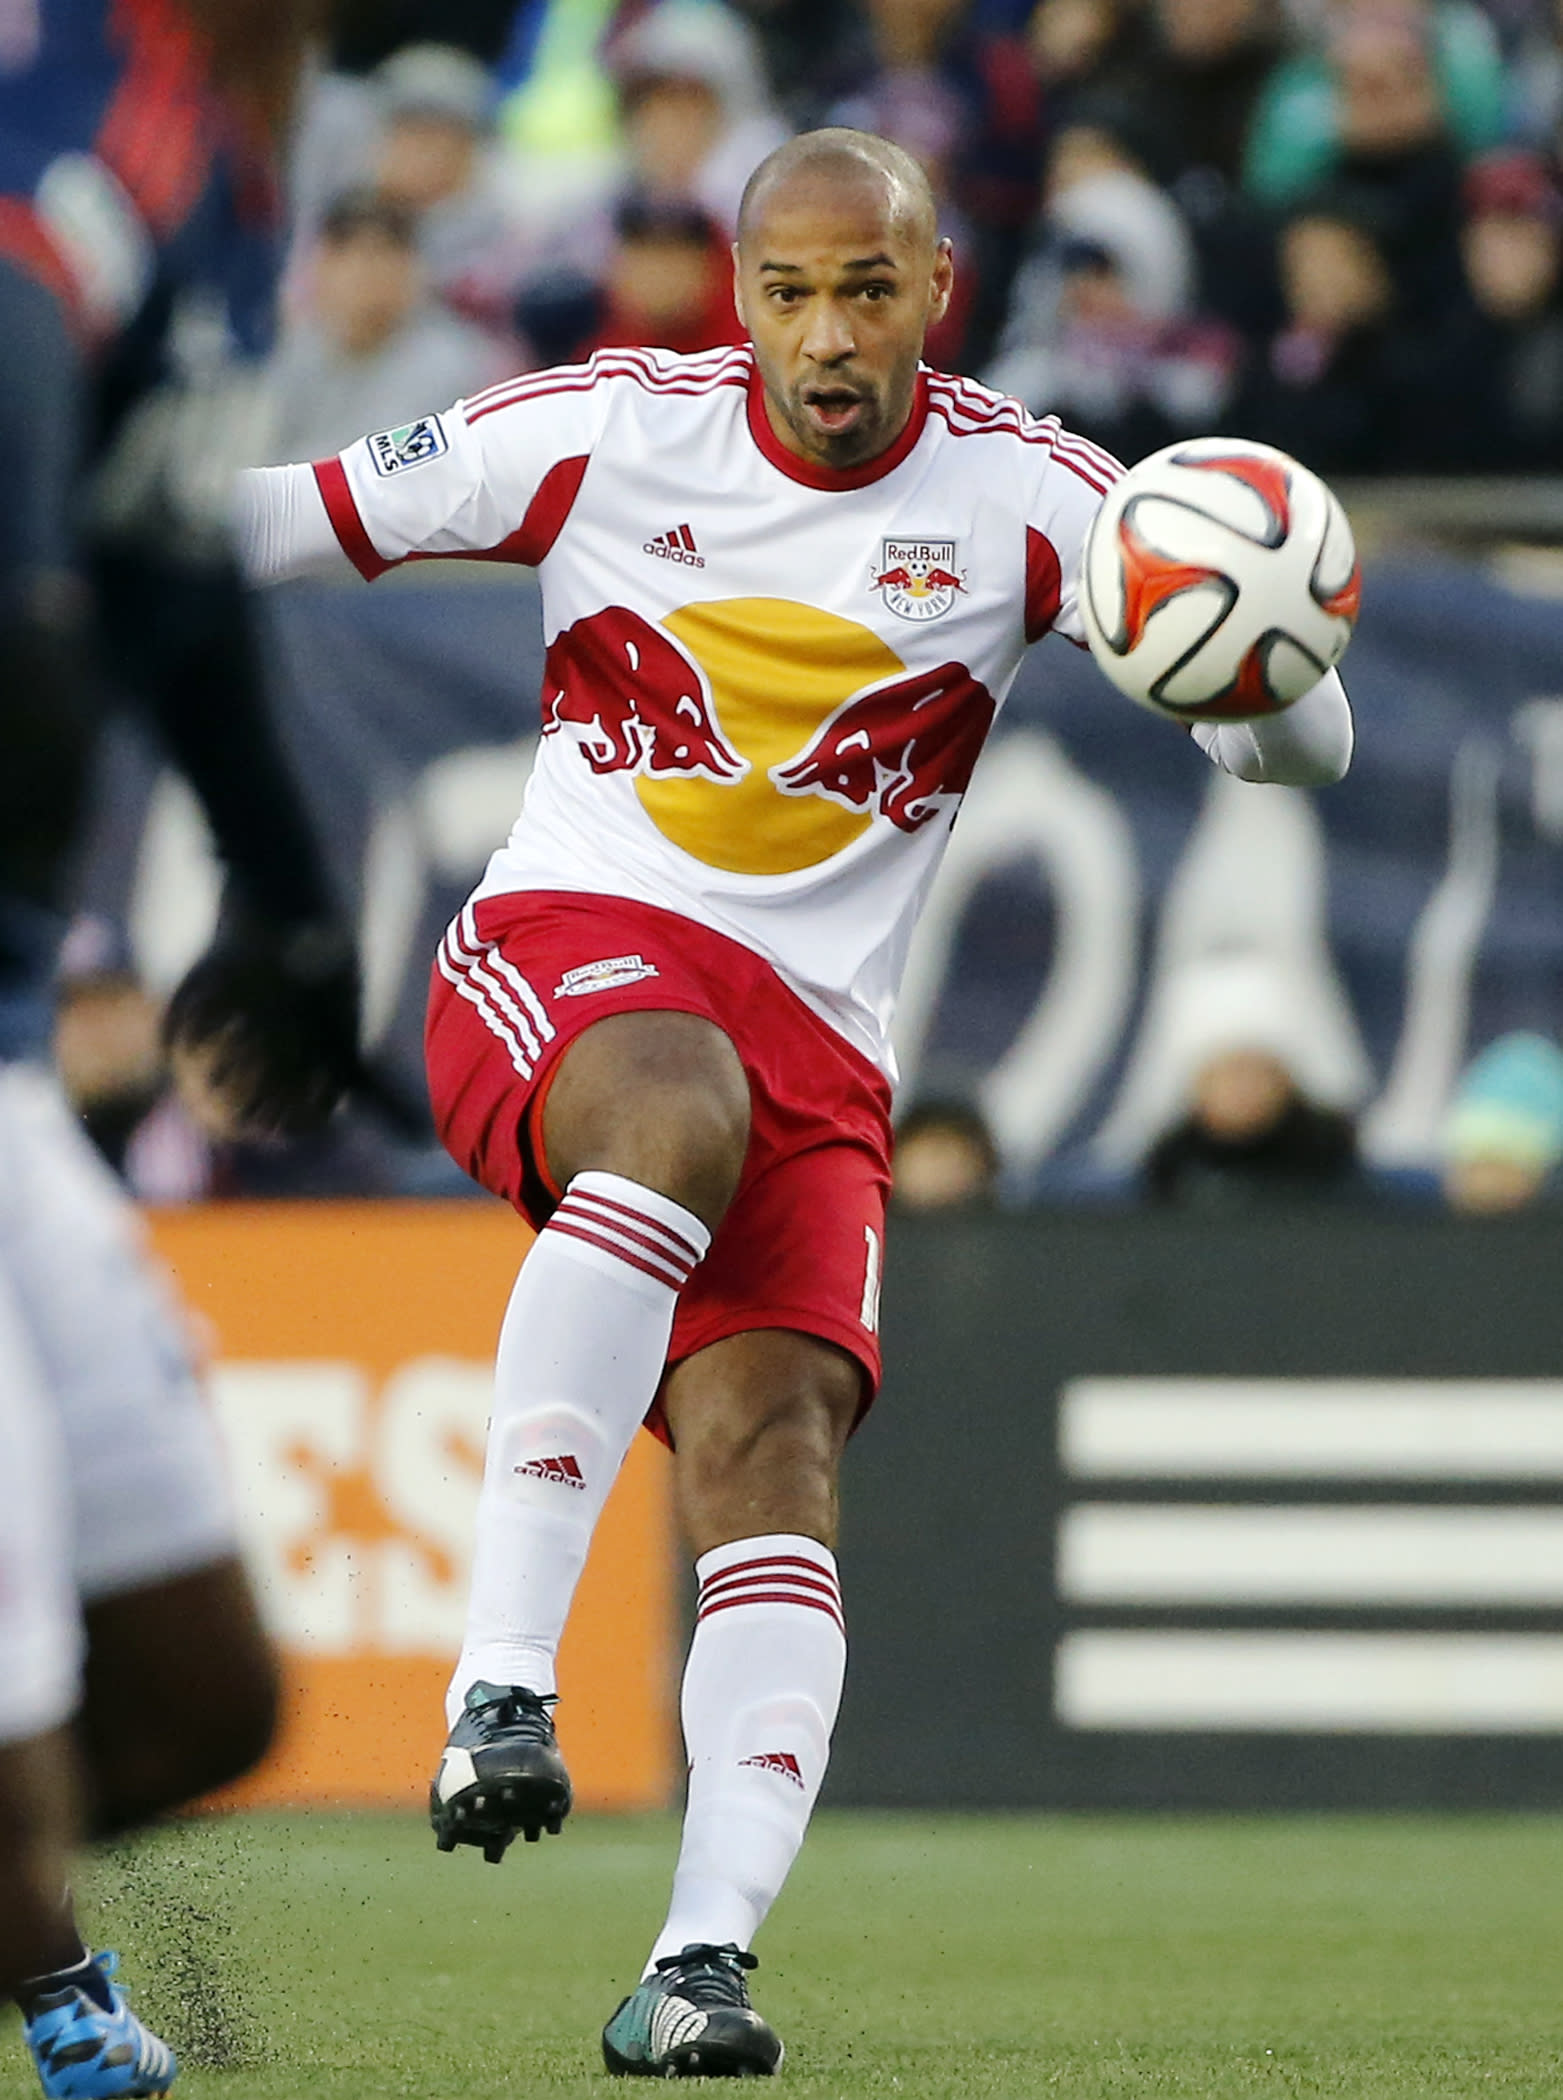 1998 World Cup winner Thierry Henry retires